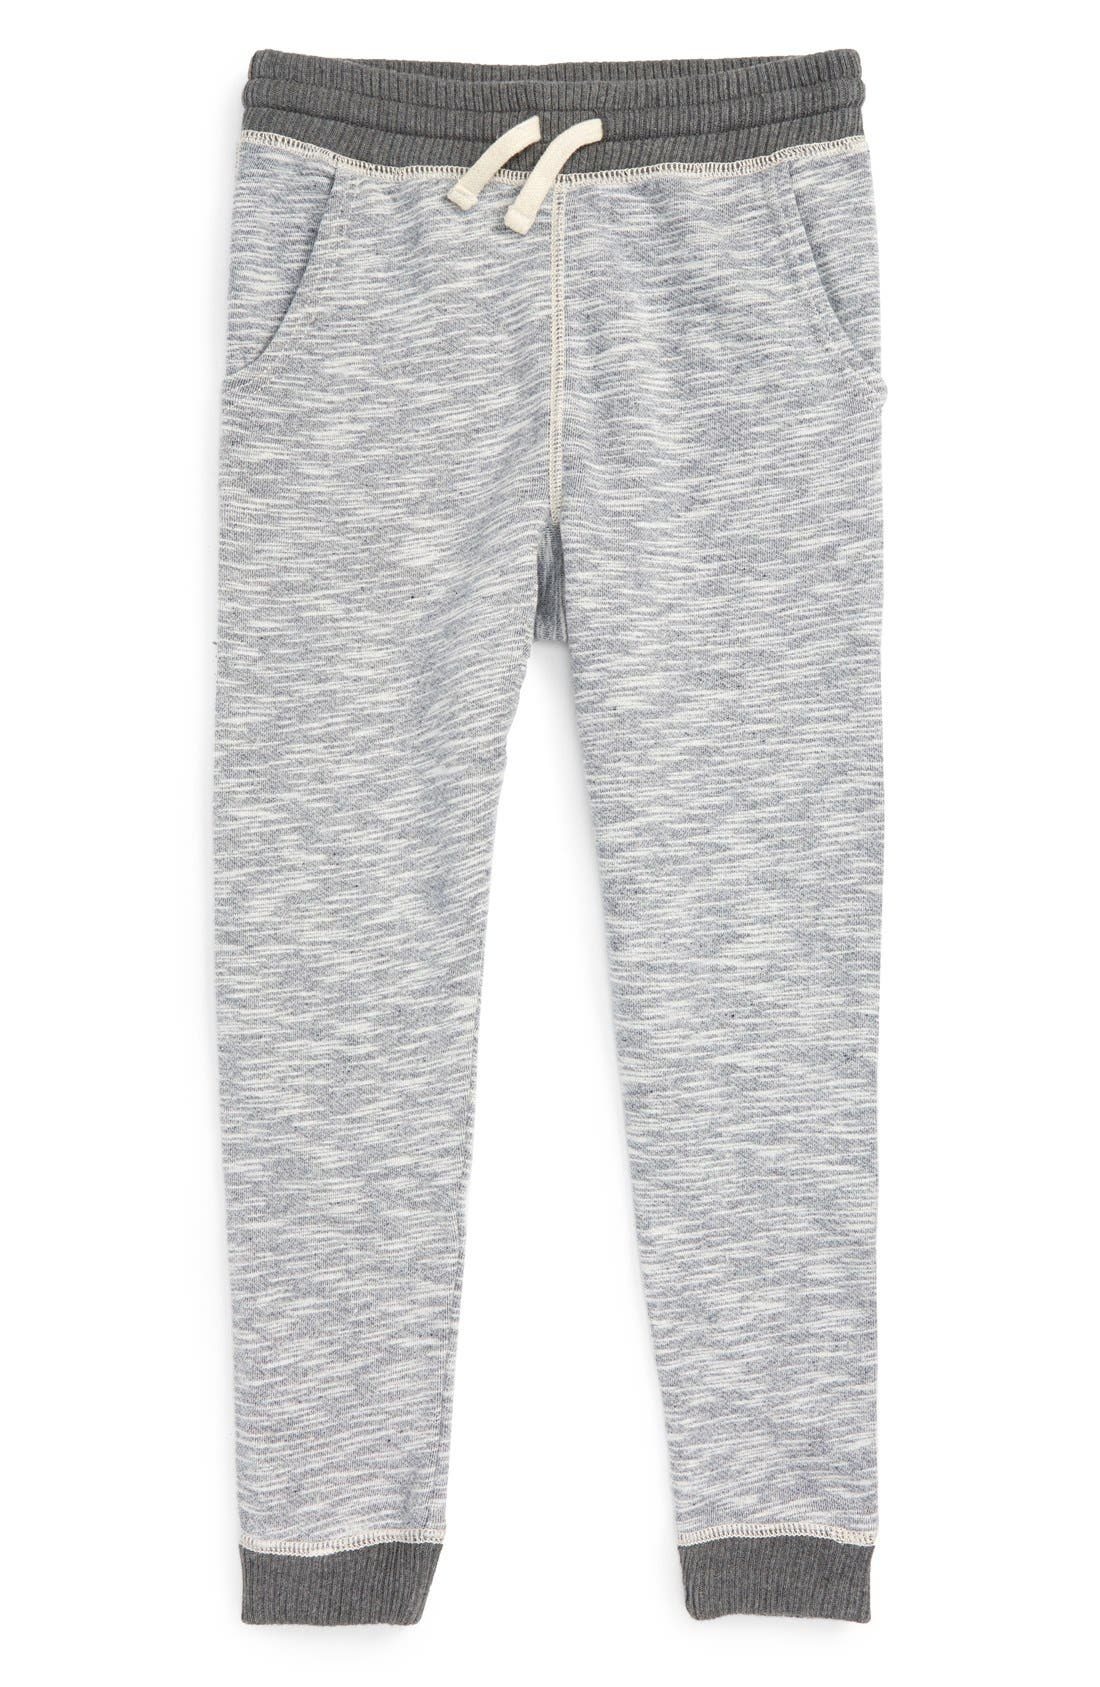 Knit Jogger Pants,                         Main,                         color, GREY MEDIUM HEATHER